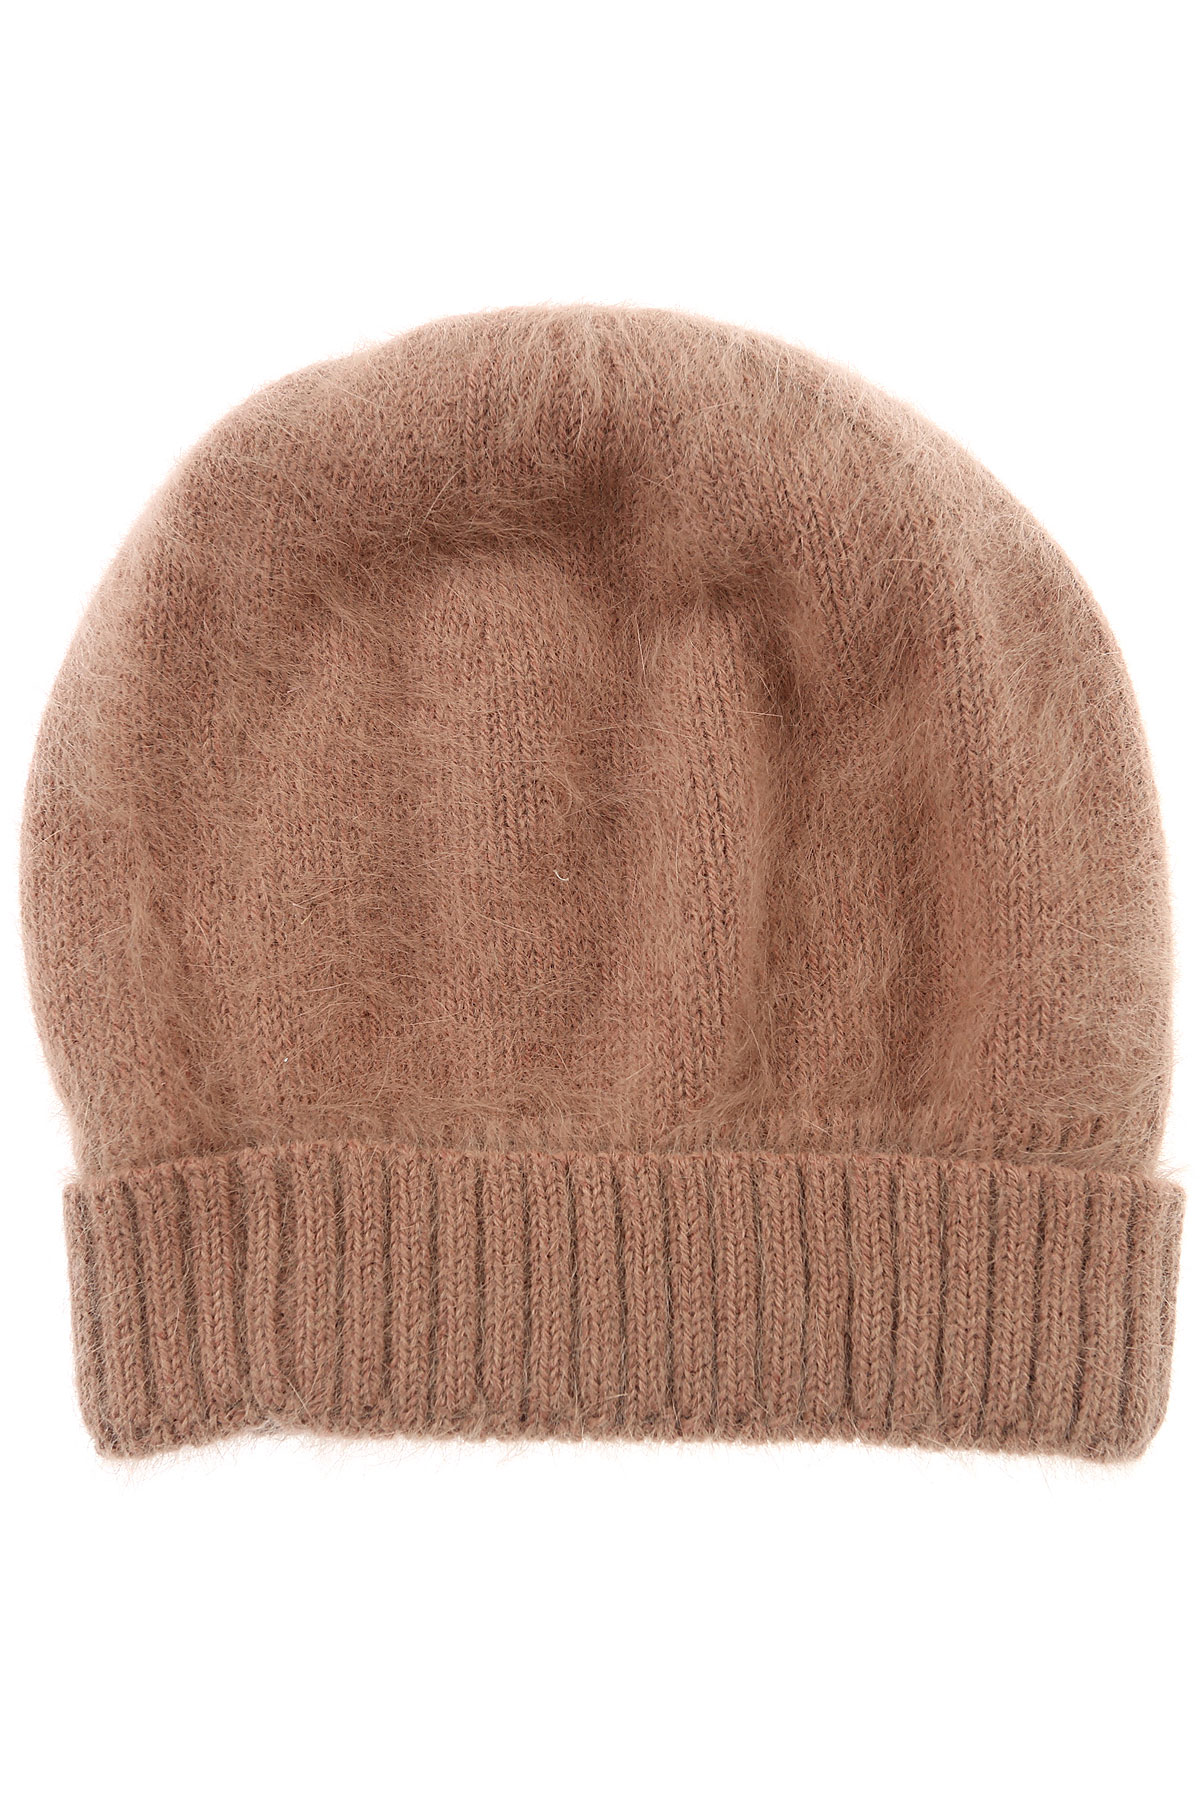 Image of Roberto Collina Hat for Women, Camel, Angora, 2017